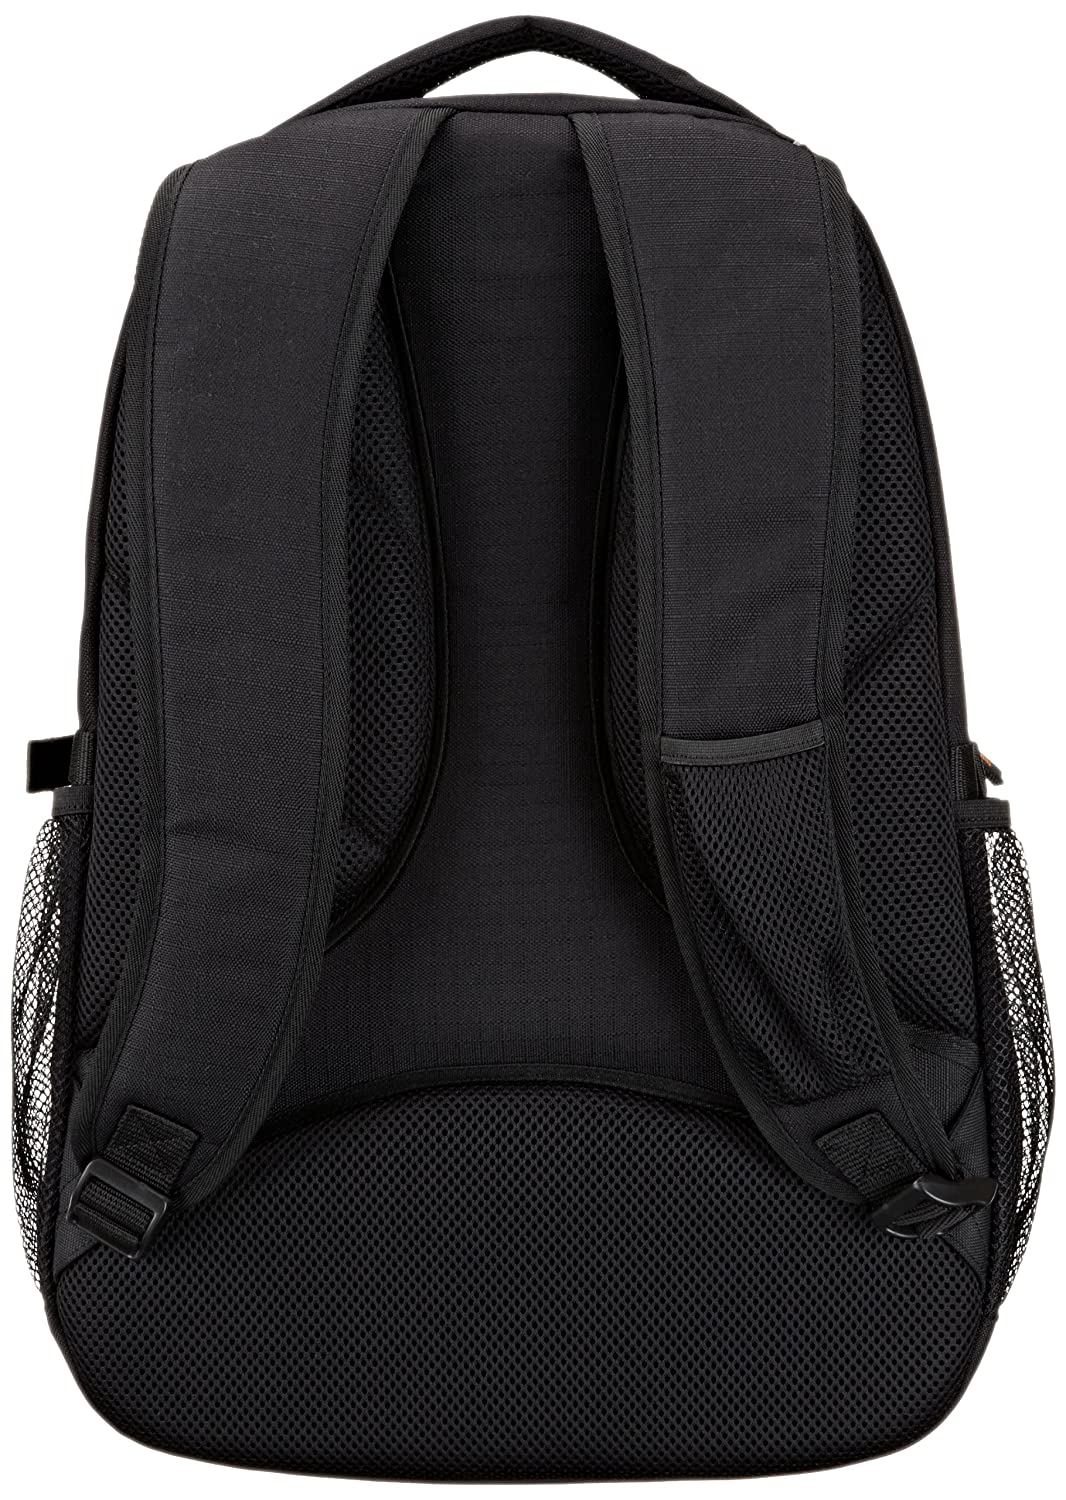 Amazon.com: AmazonBasics Backpack for Laptops Up To 17-Inch ...